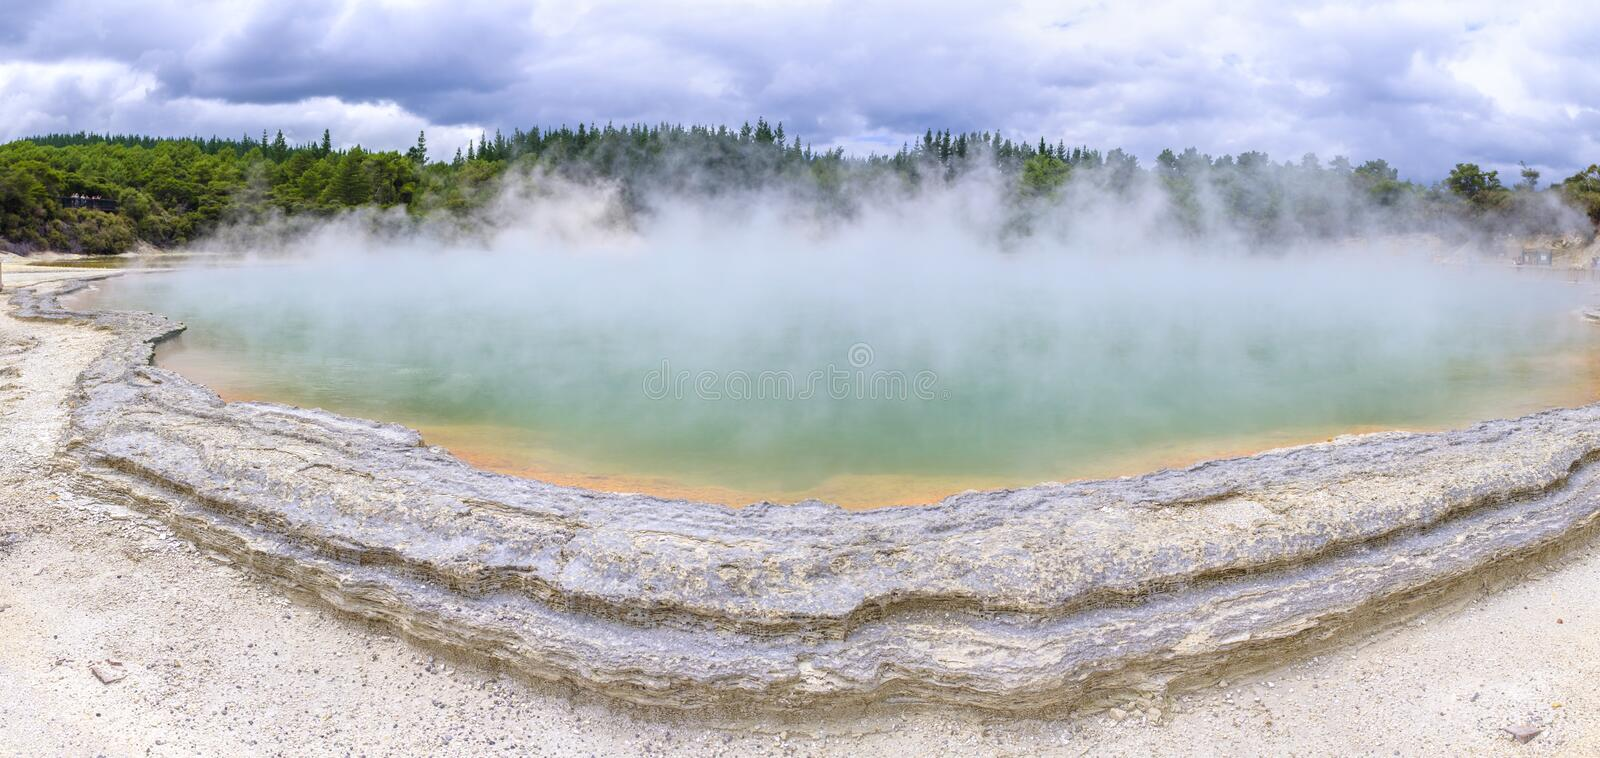 Champagne Pool in Waiotapu Thermal Wonderland. Panorama view of the famous Champagne Pool at the Waiotapu Thermal Wonderland park in New Zealand stock photos